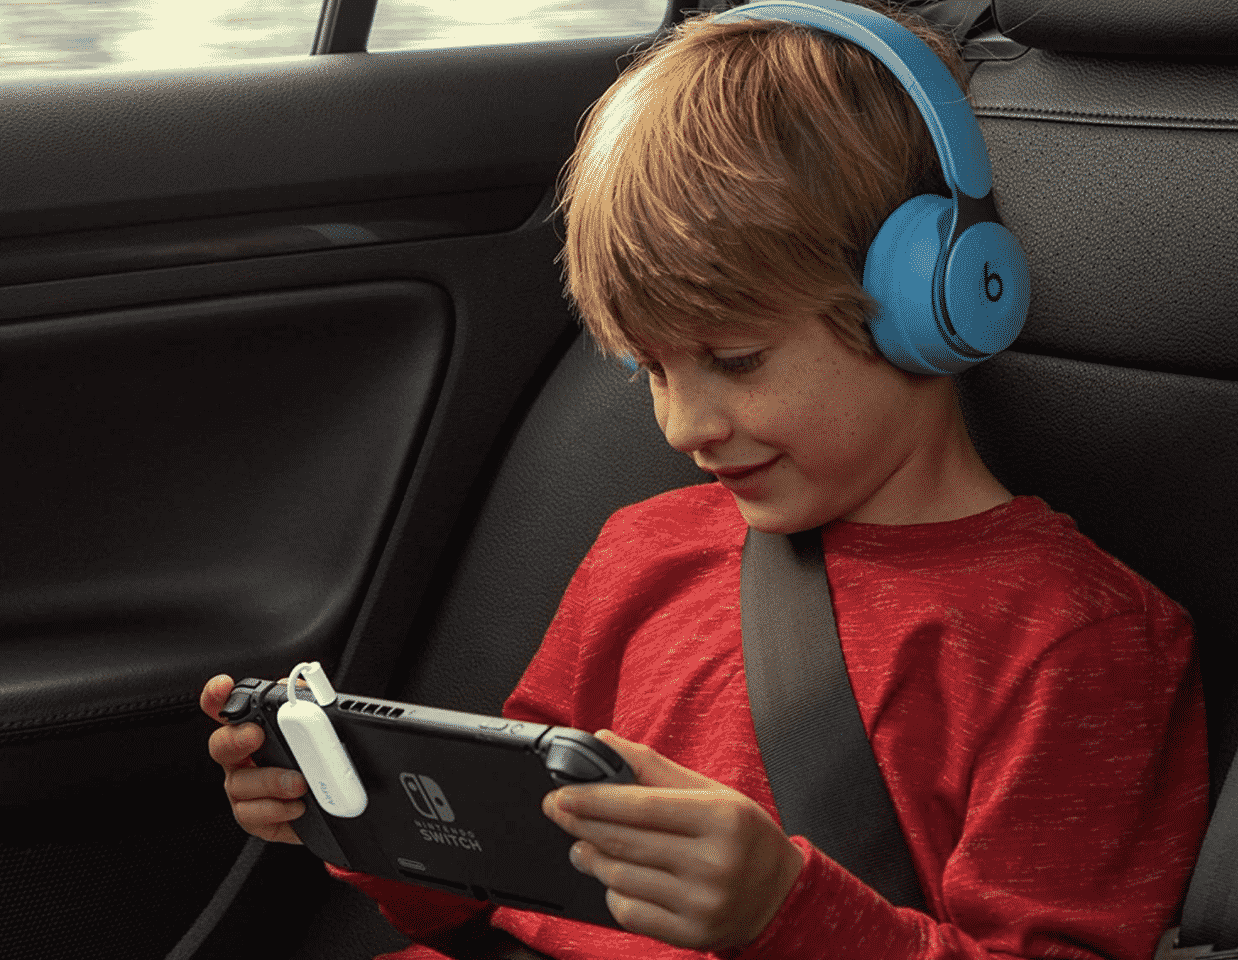 AirFly for Nintendo